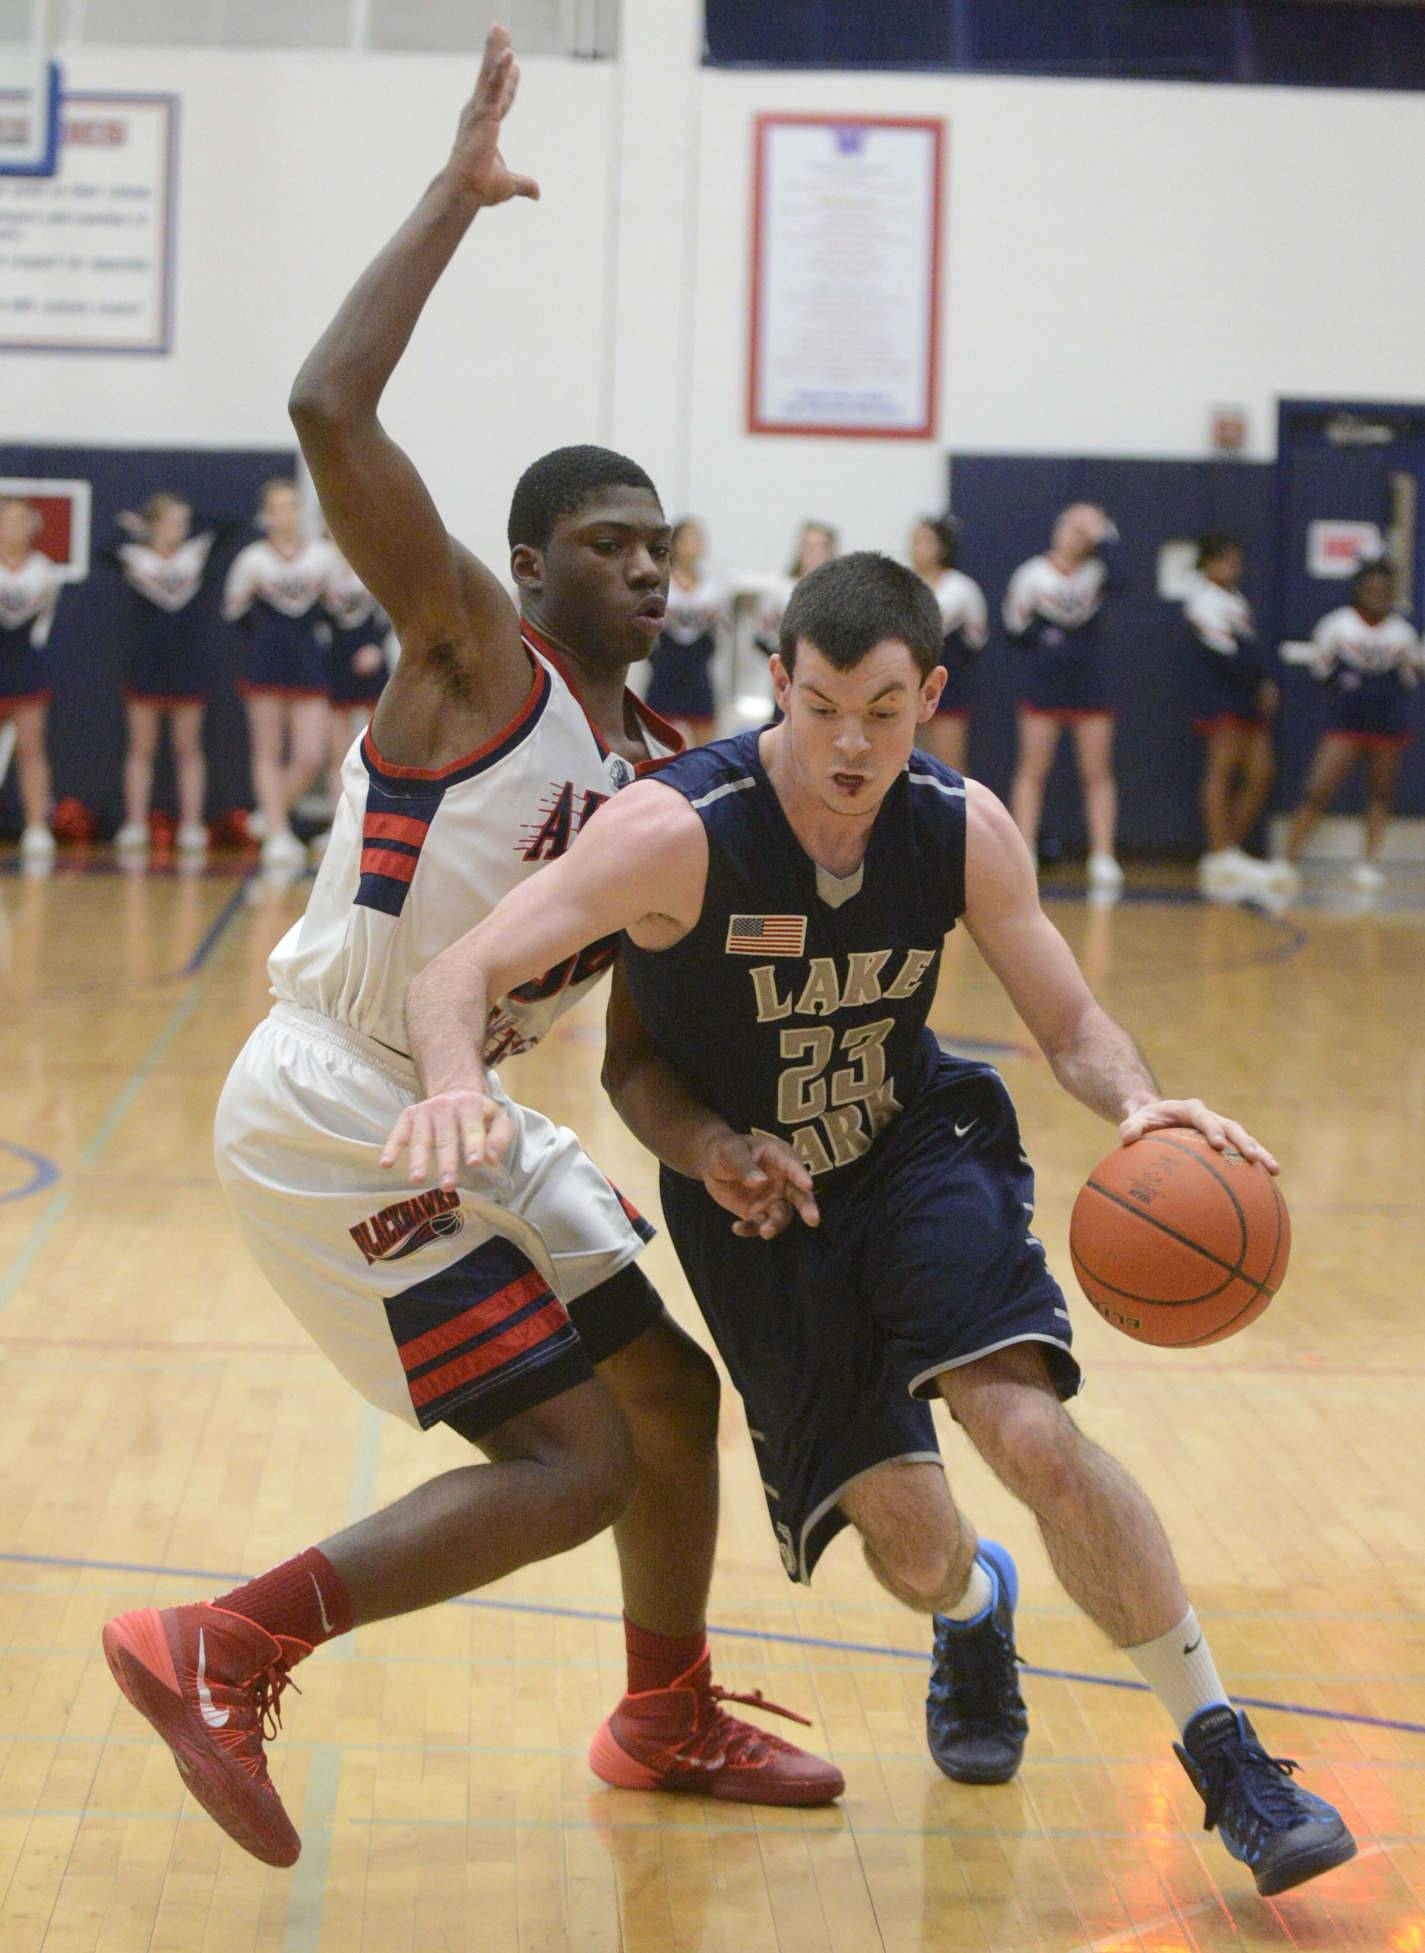 Images from the Lake Park vs. West Aurora boys basketball game Wednesday, February 26, 2014.